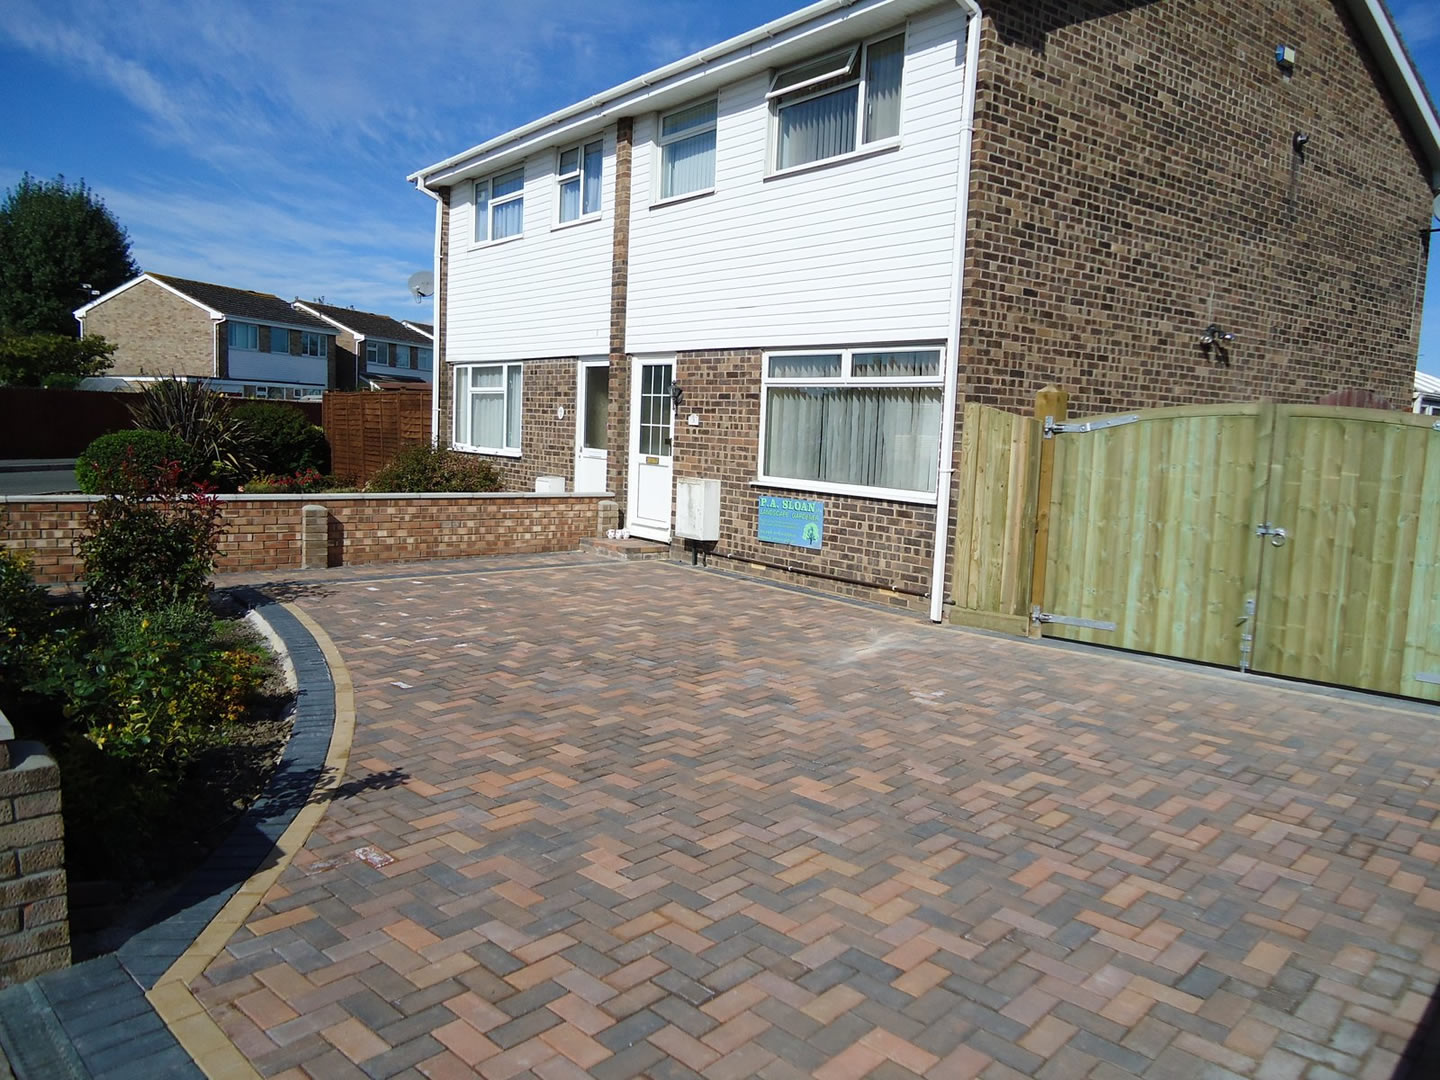 Garden Patio & Paving - 3S01